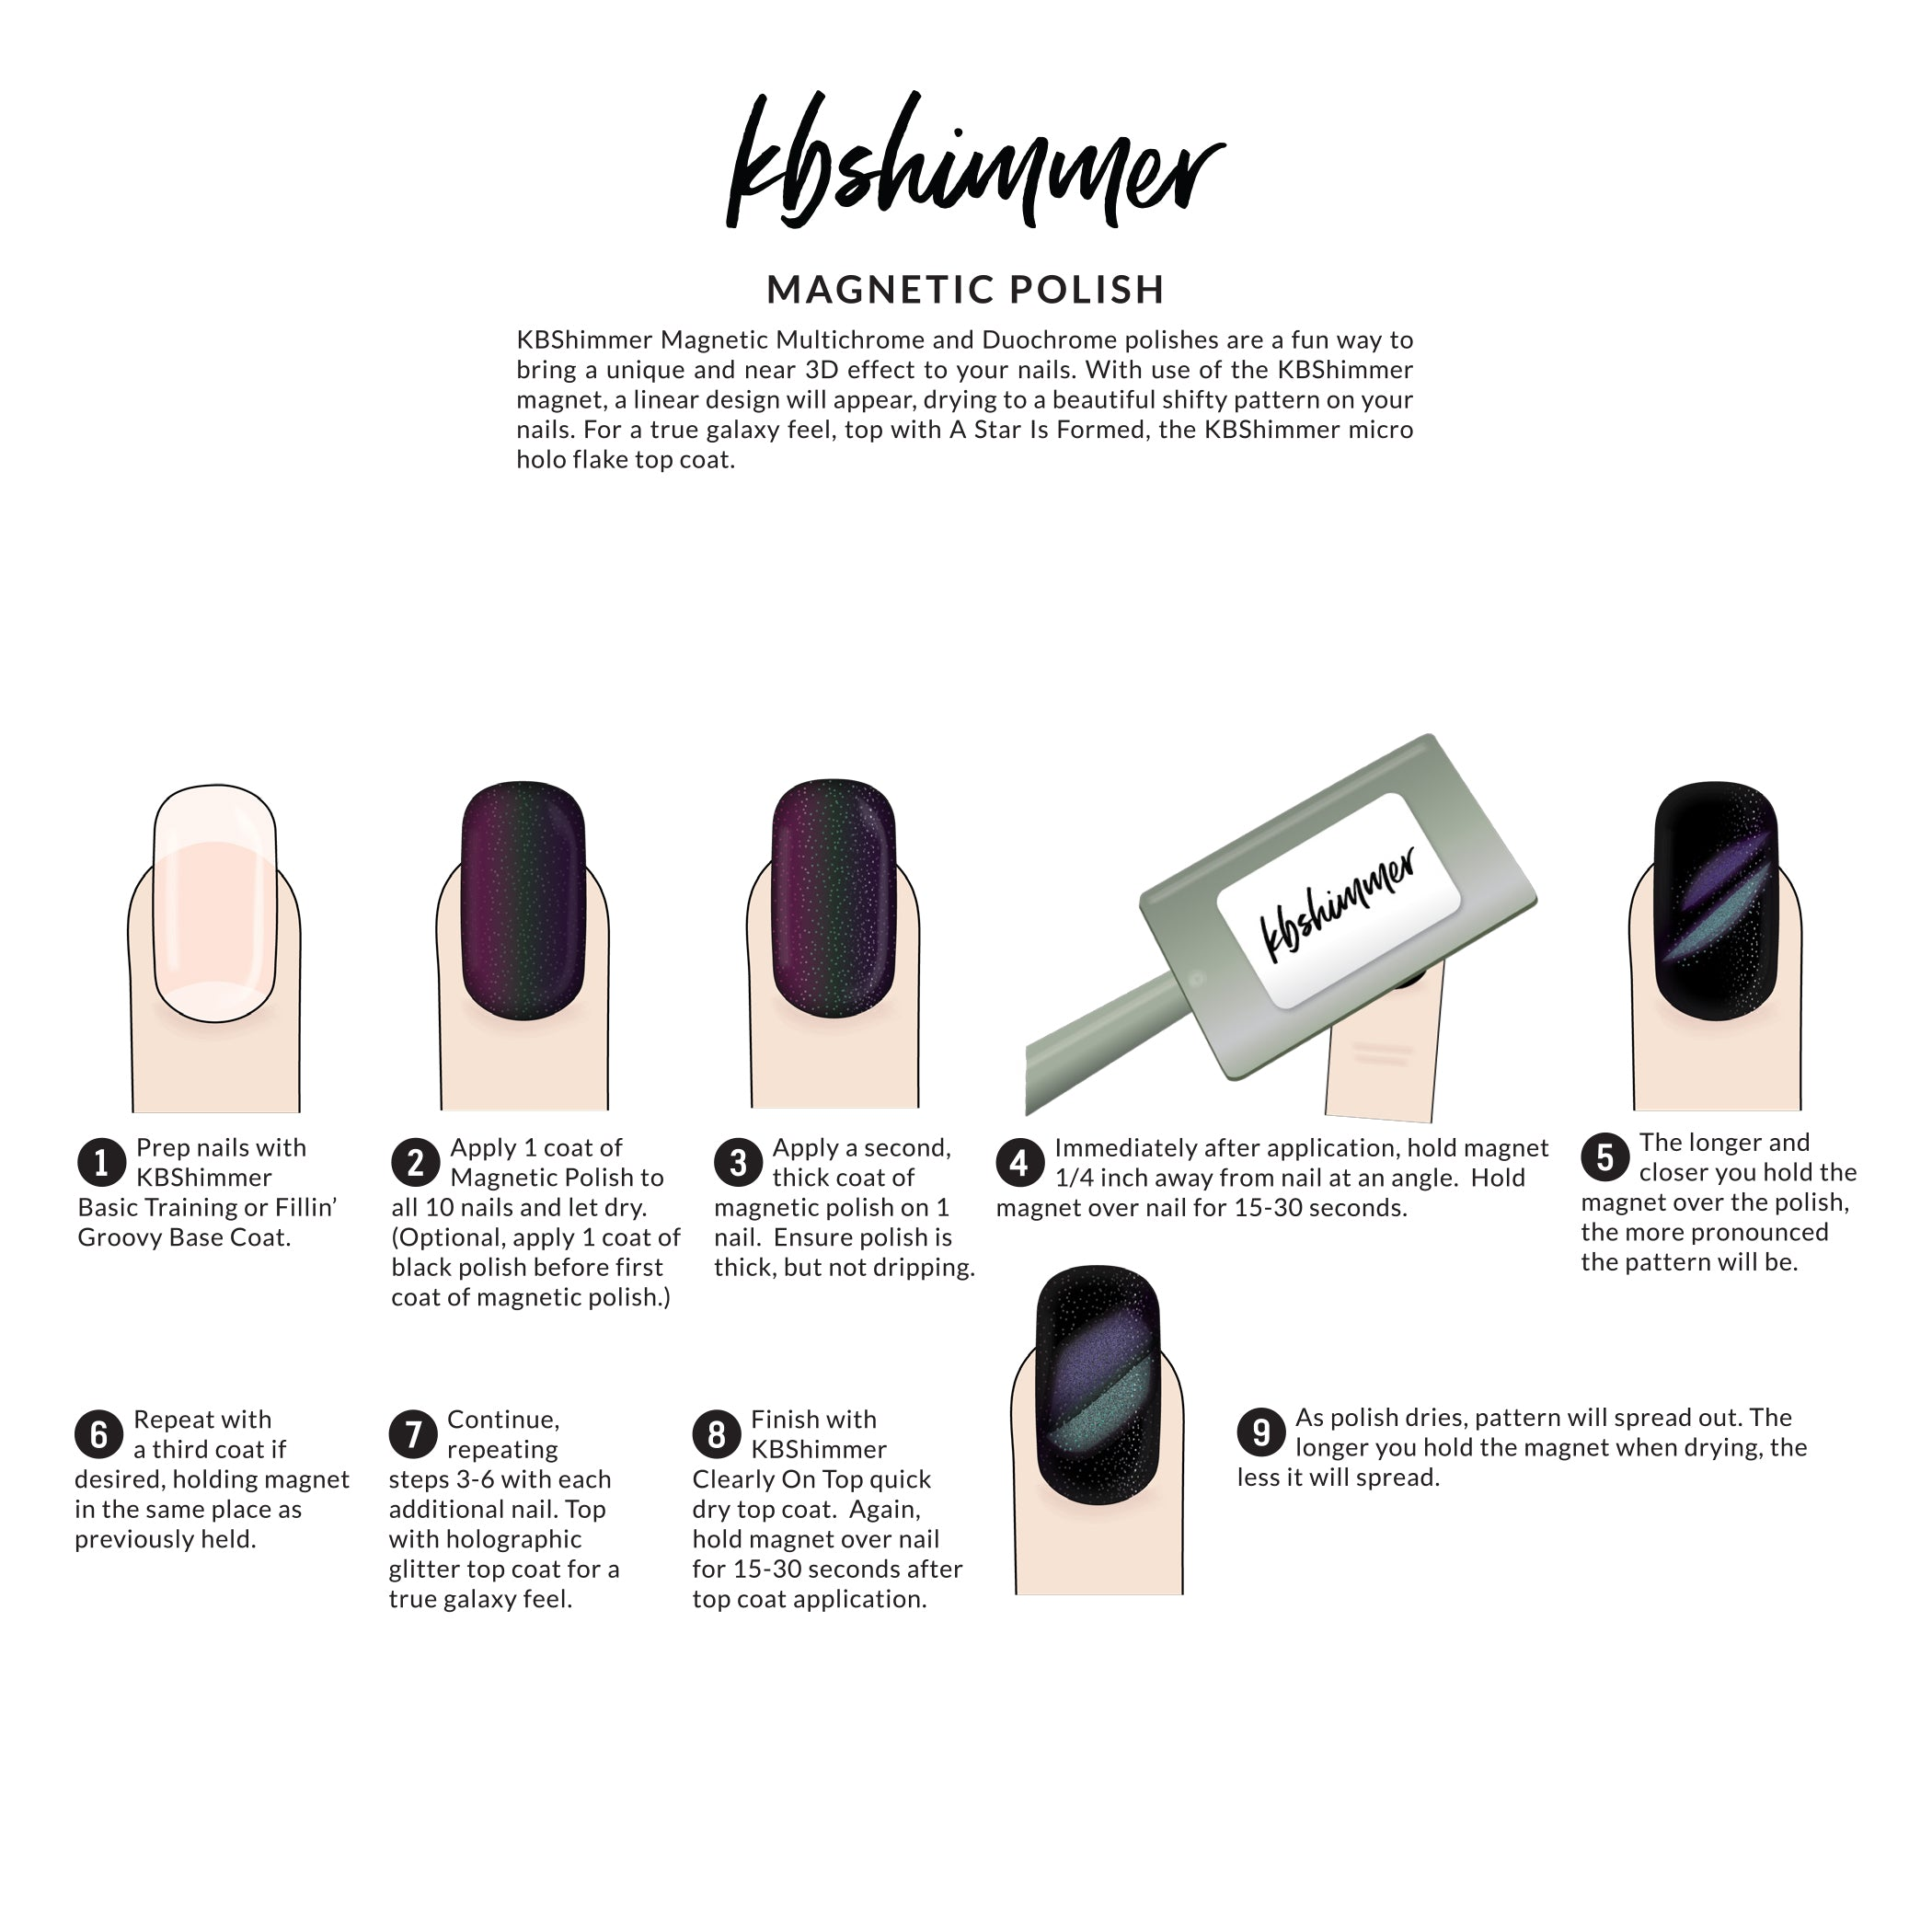 Magnetic Nail Polish Brands - To Bend Light